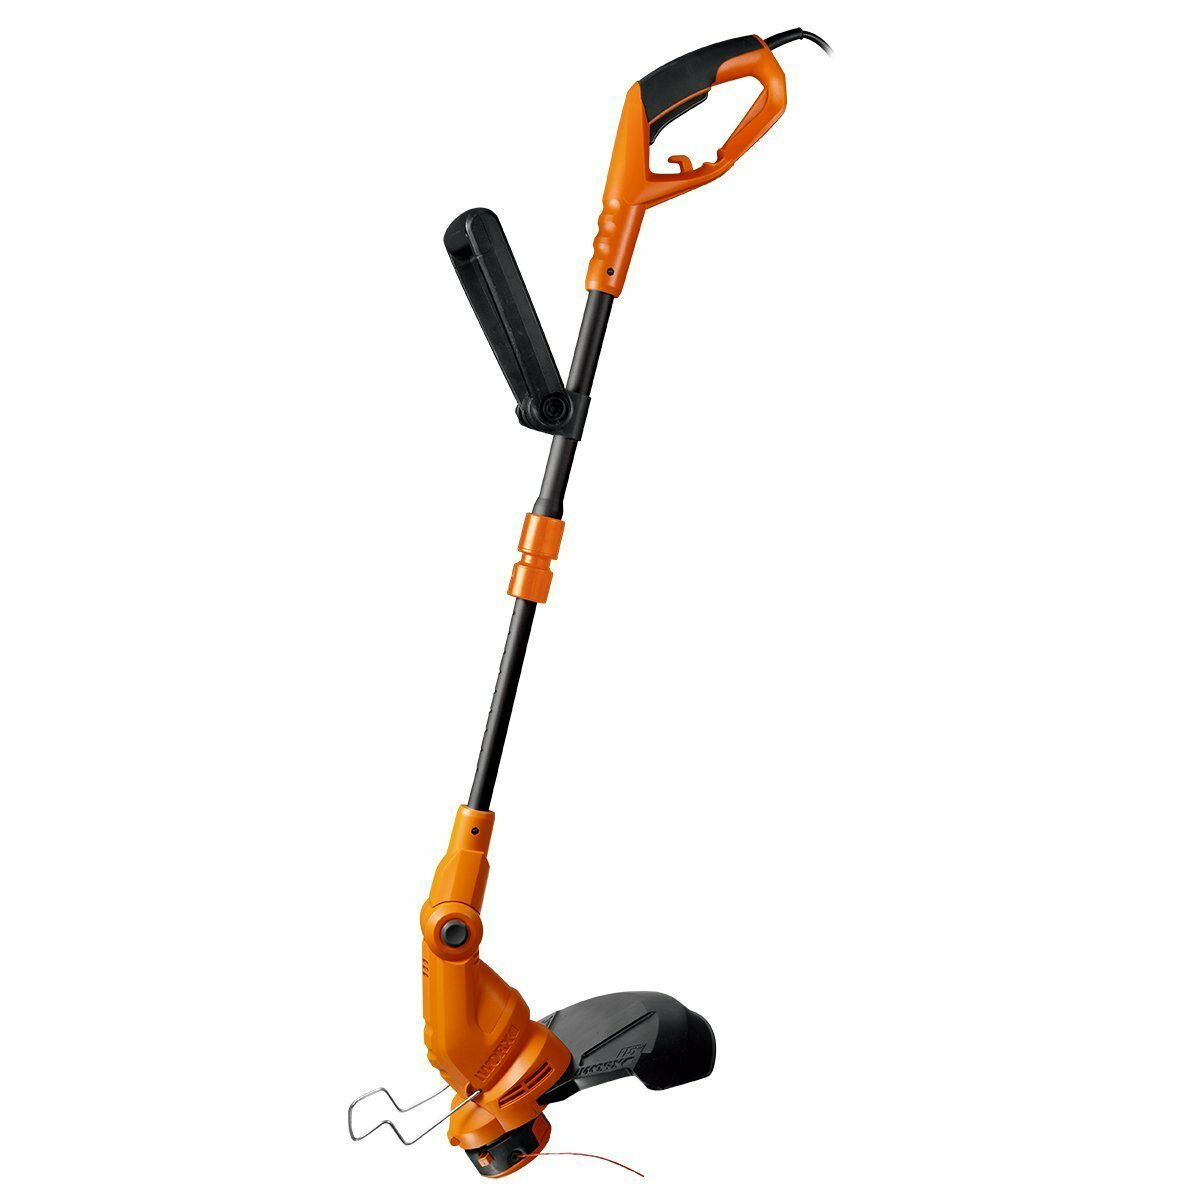 WORX WG119 15-Inch Electric Grass Trimmer with Tilting Shaft